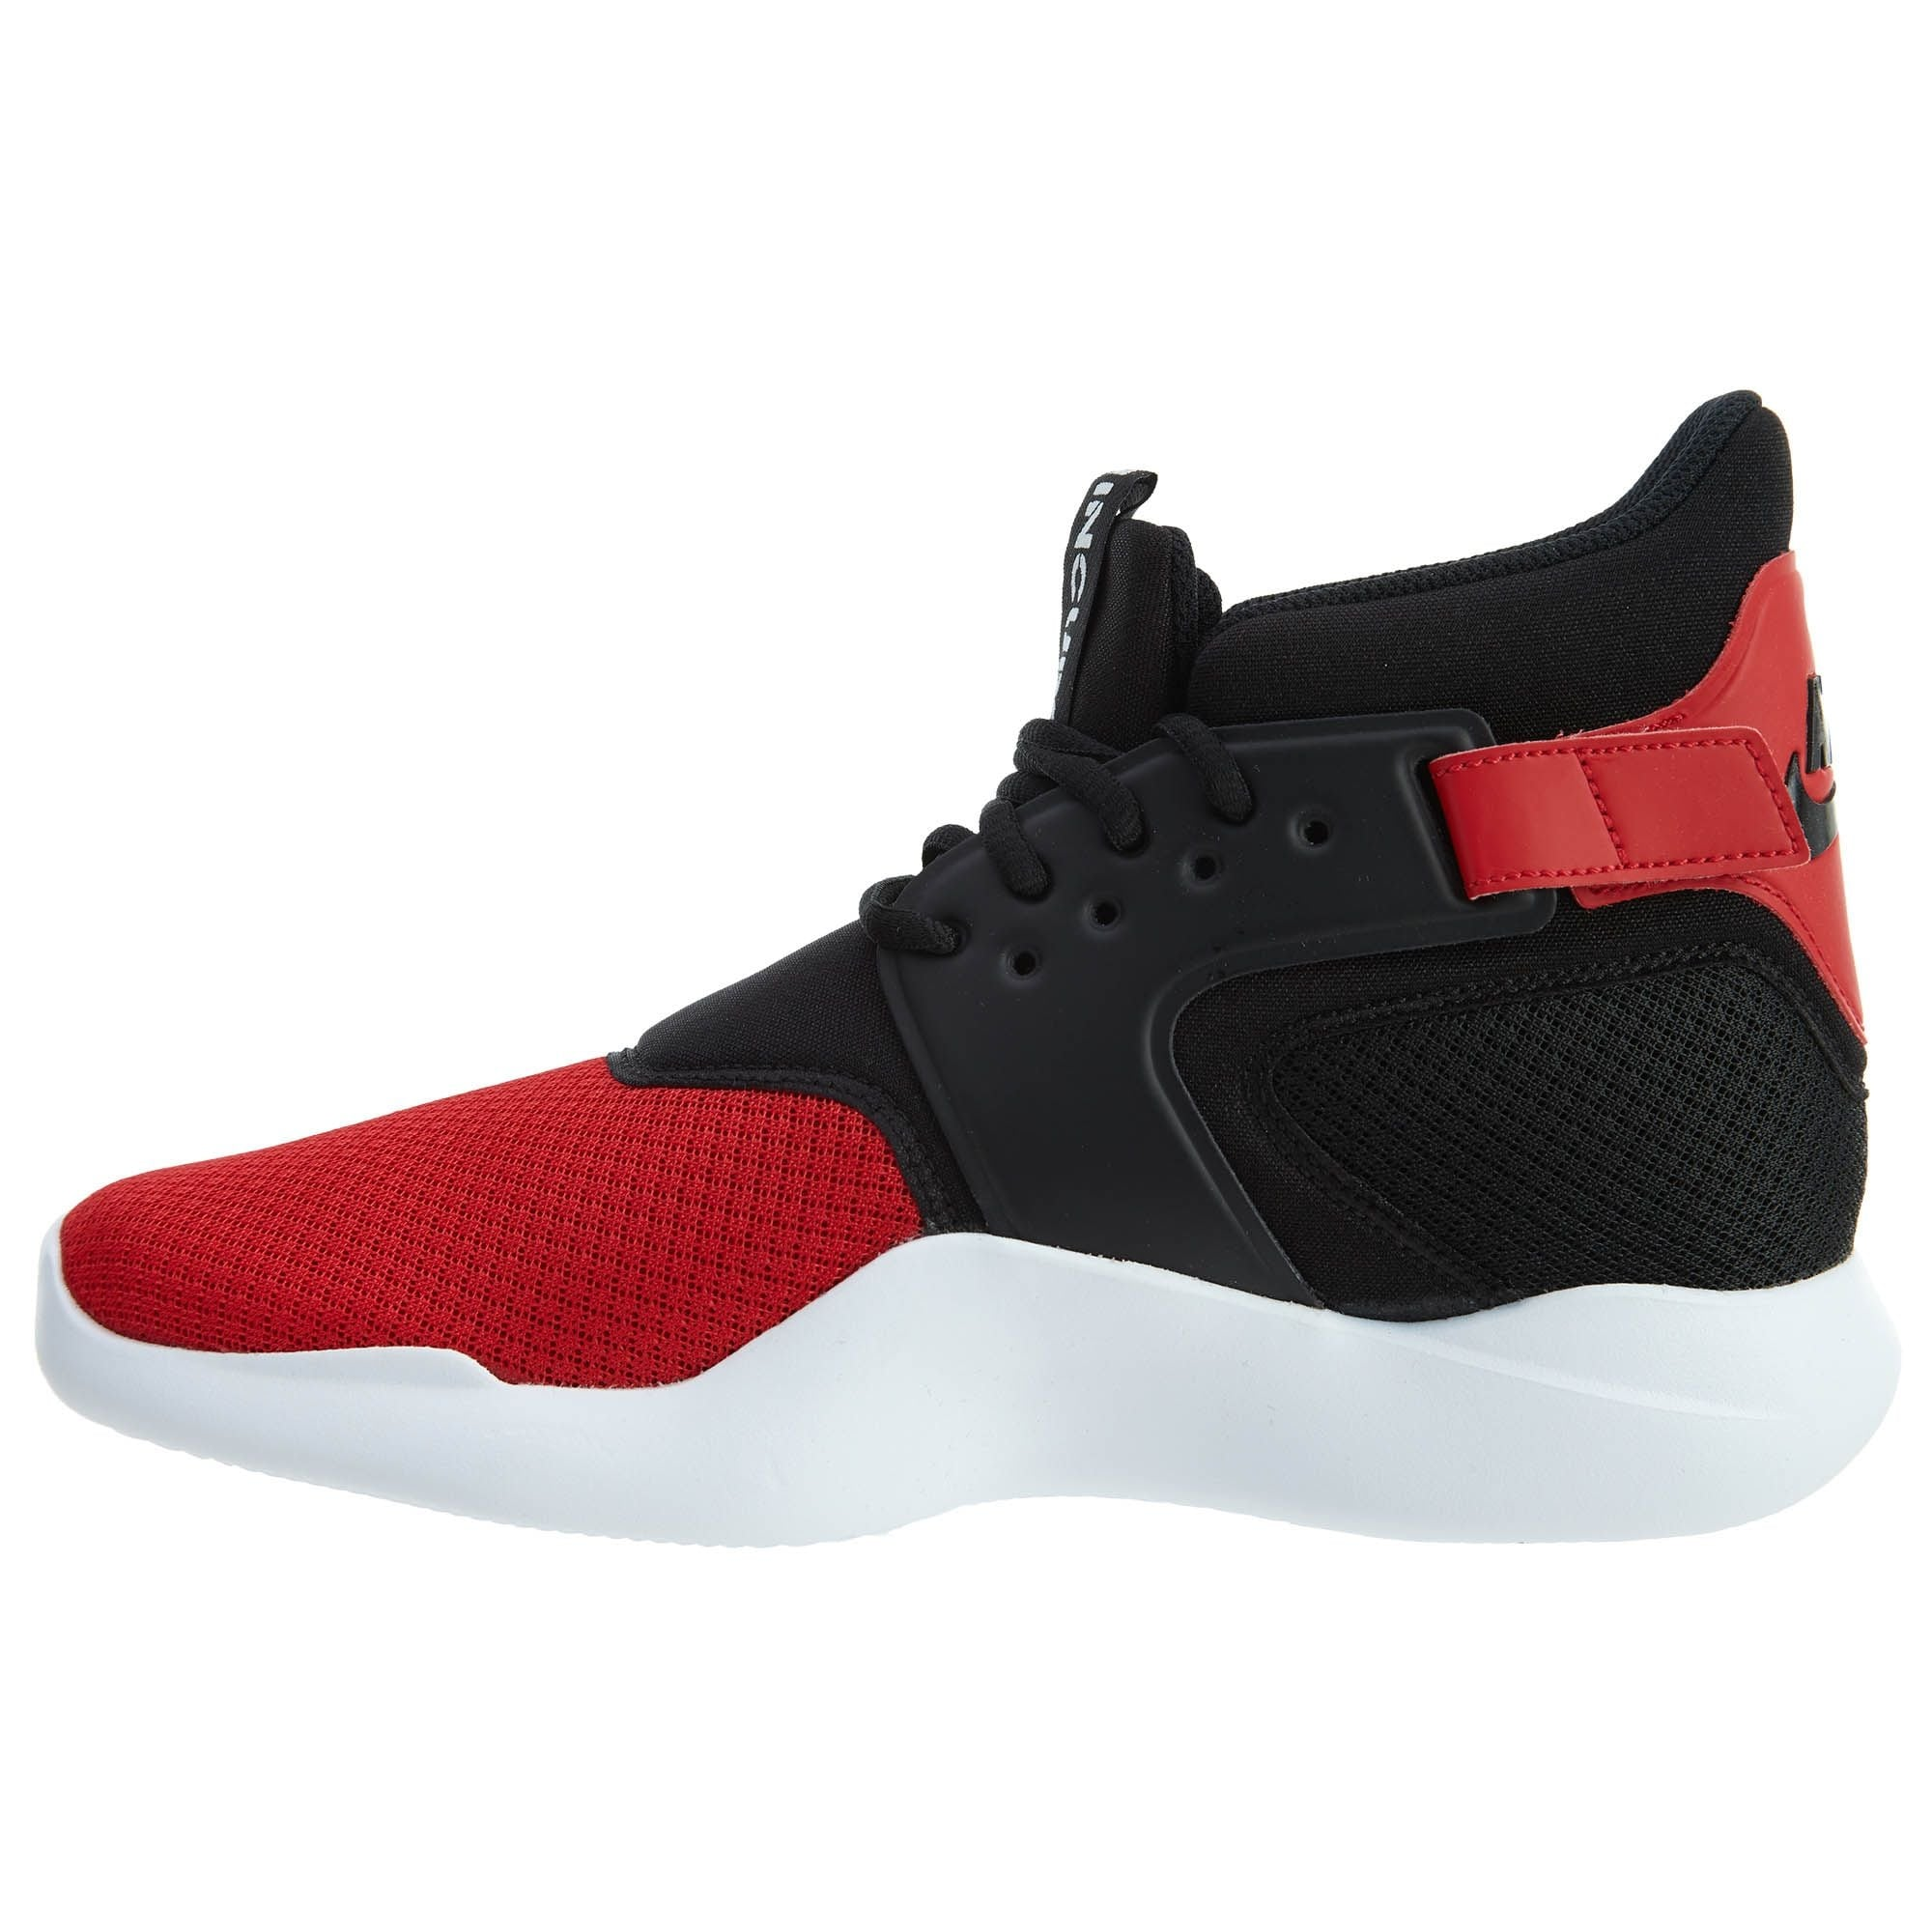 6202080d93fa Shop Nike Mens Incursion Hight Top Lace Up Fashion Sneakers - Free Shipping  On Orders Over  45 - Overstock - 22722587